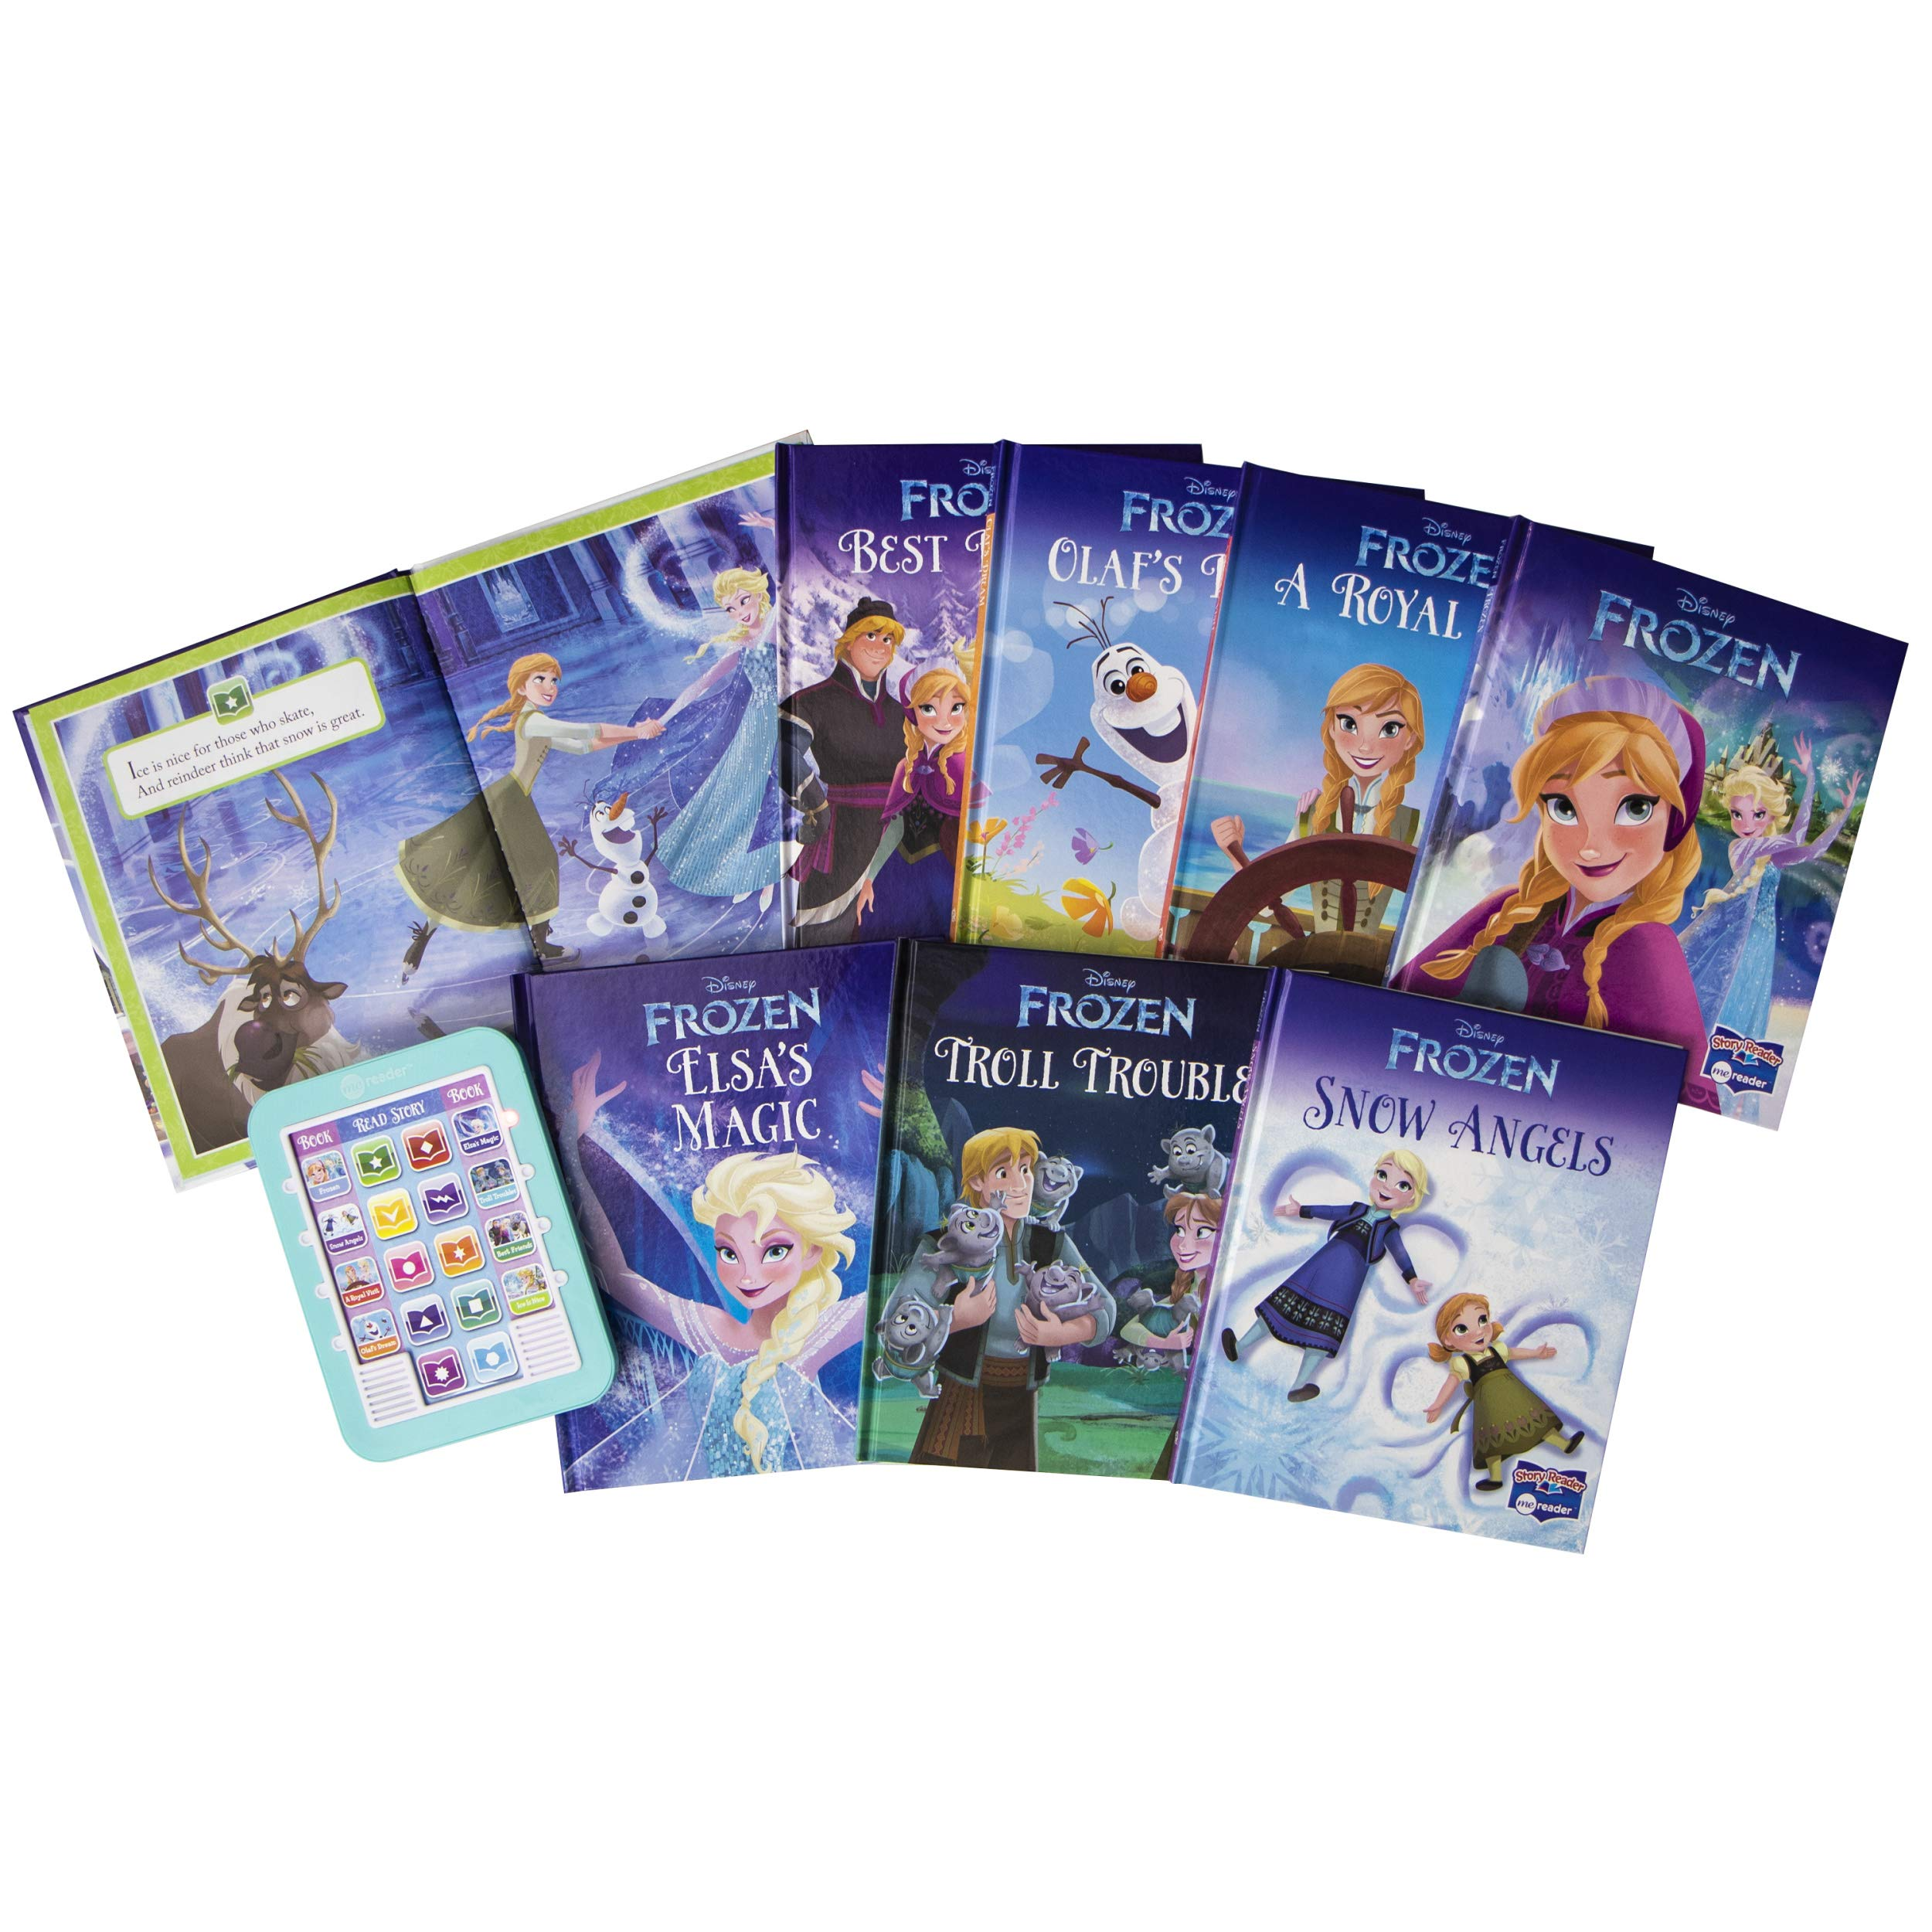 Frozen Me Reader Electronic Reader and 8-Sound Book Library was $32.99, NOW $14.06!